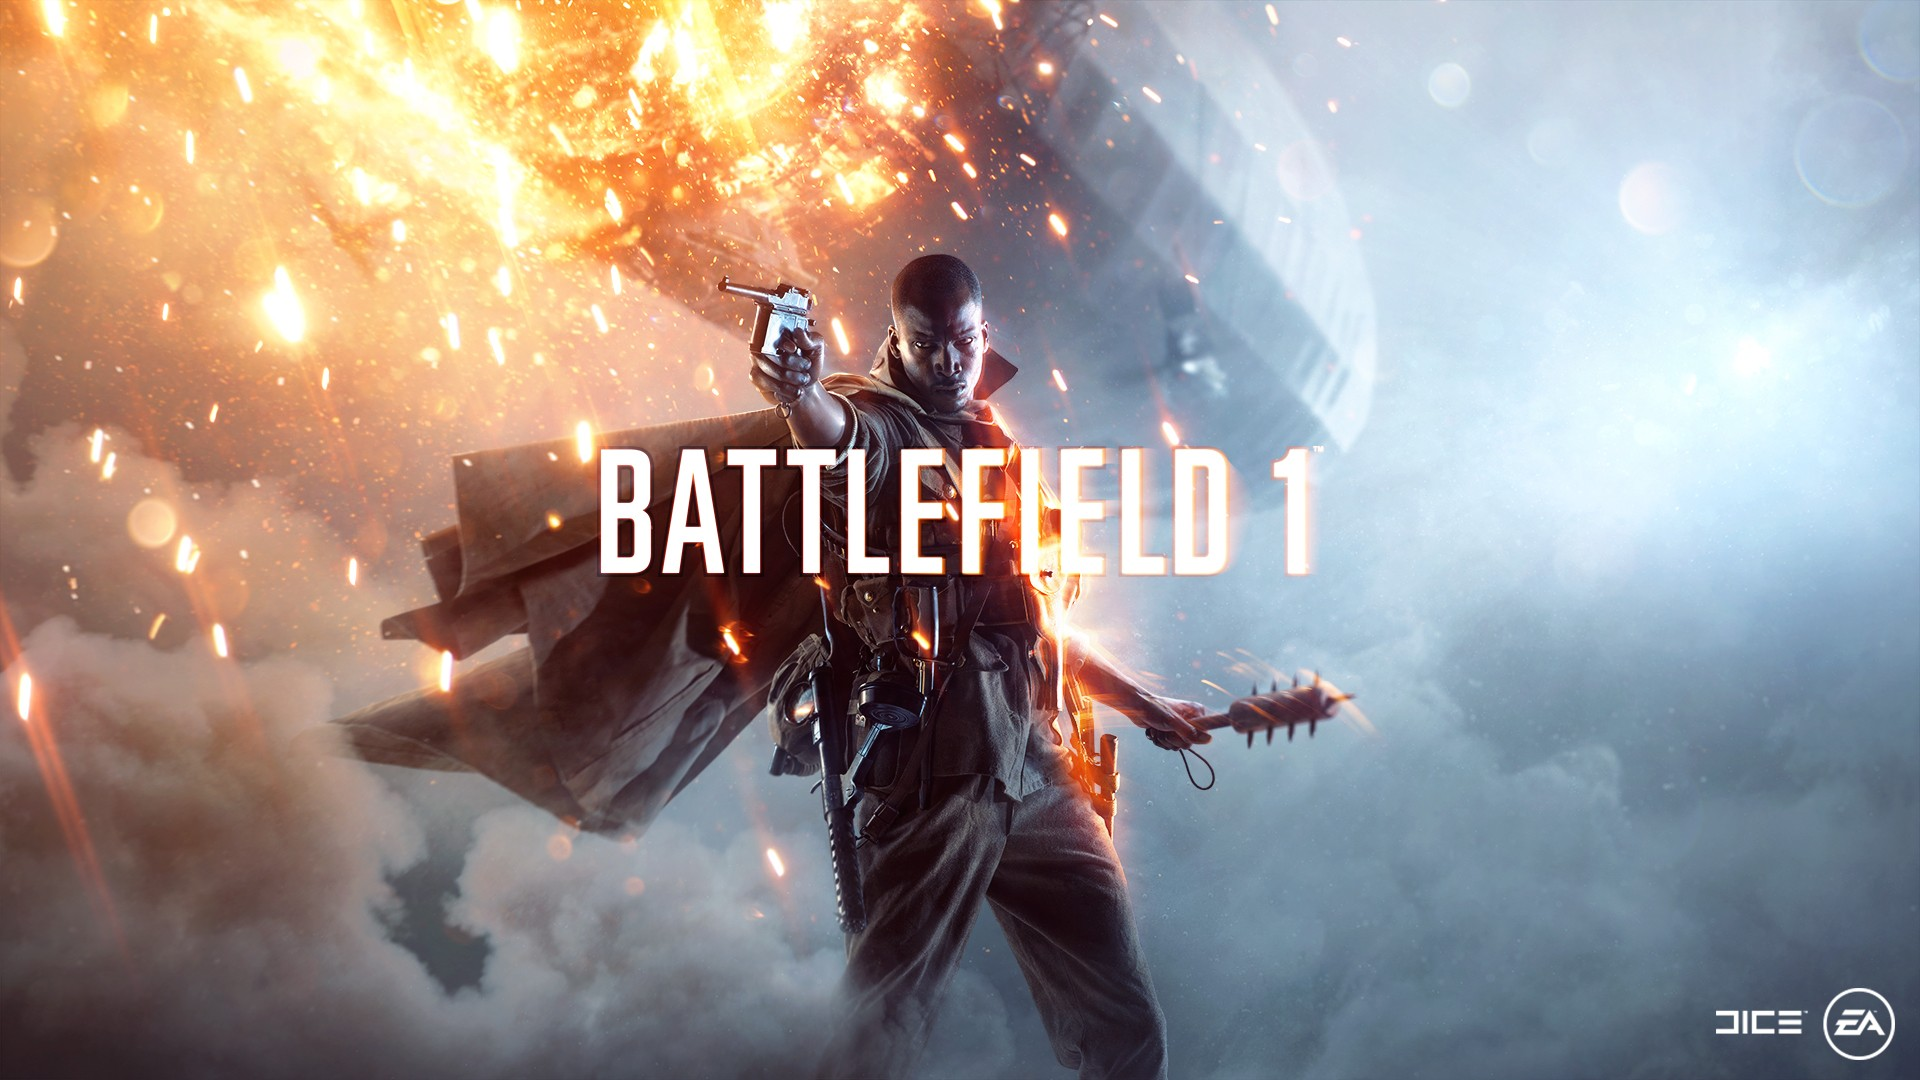 'Battlefield 1' Misses Out On the Stories of Black Soldiers In WWI